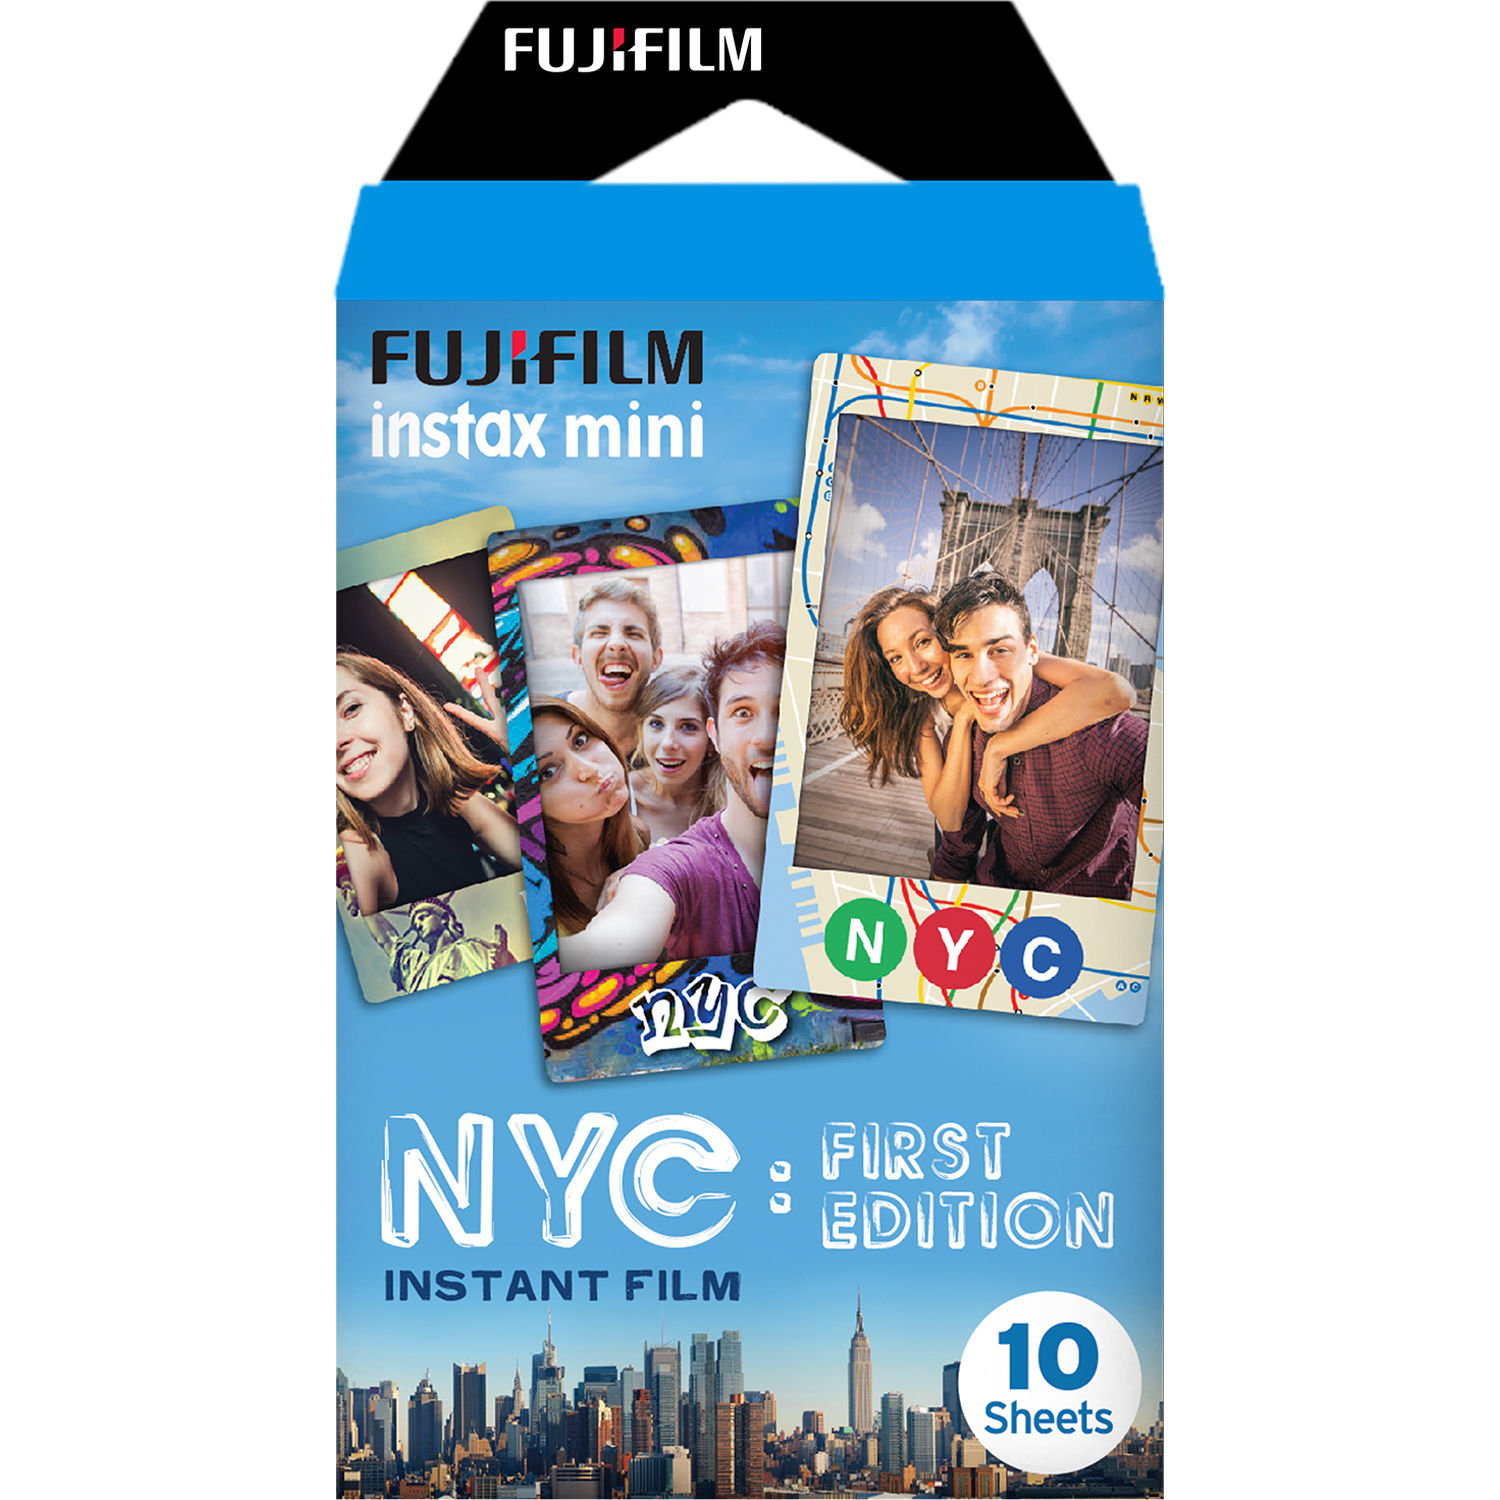 Fujifilm Instax Mini Nyc First Edition Instant Film 16528822 Bh Paper Comic 10 Exposures Expired 06 2018